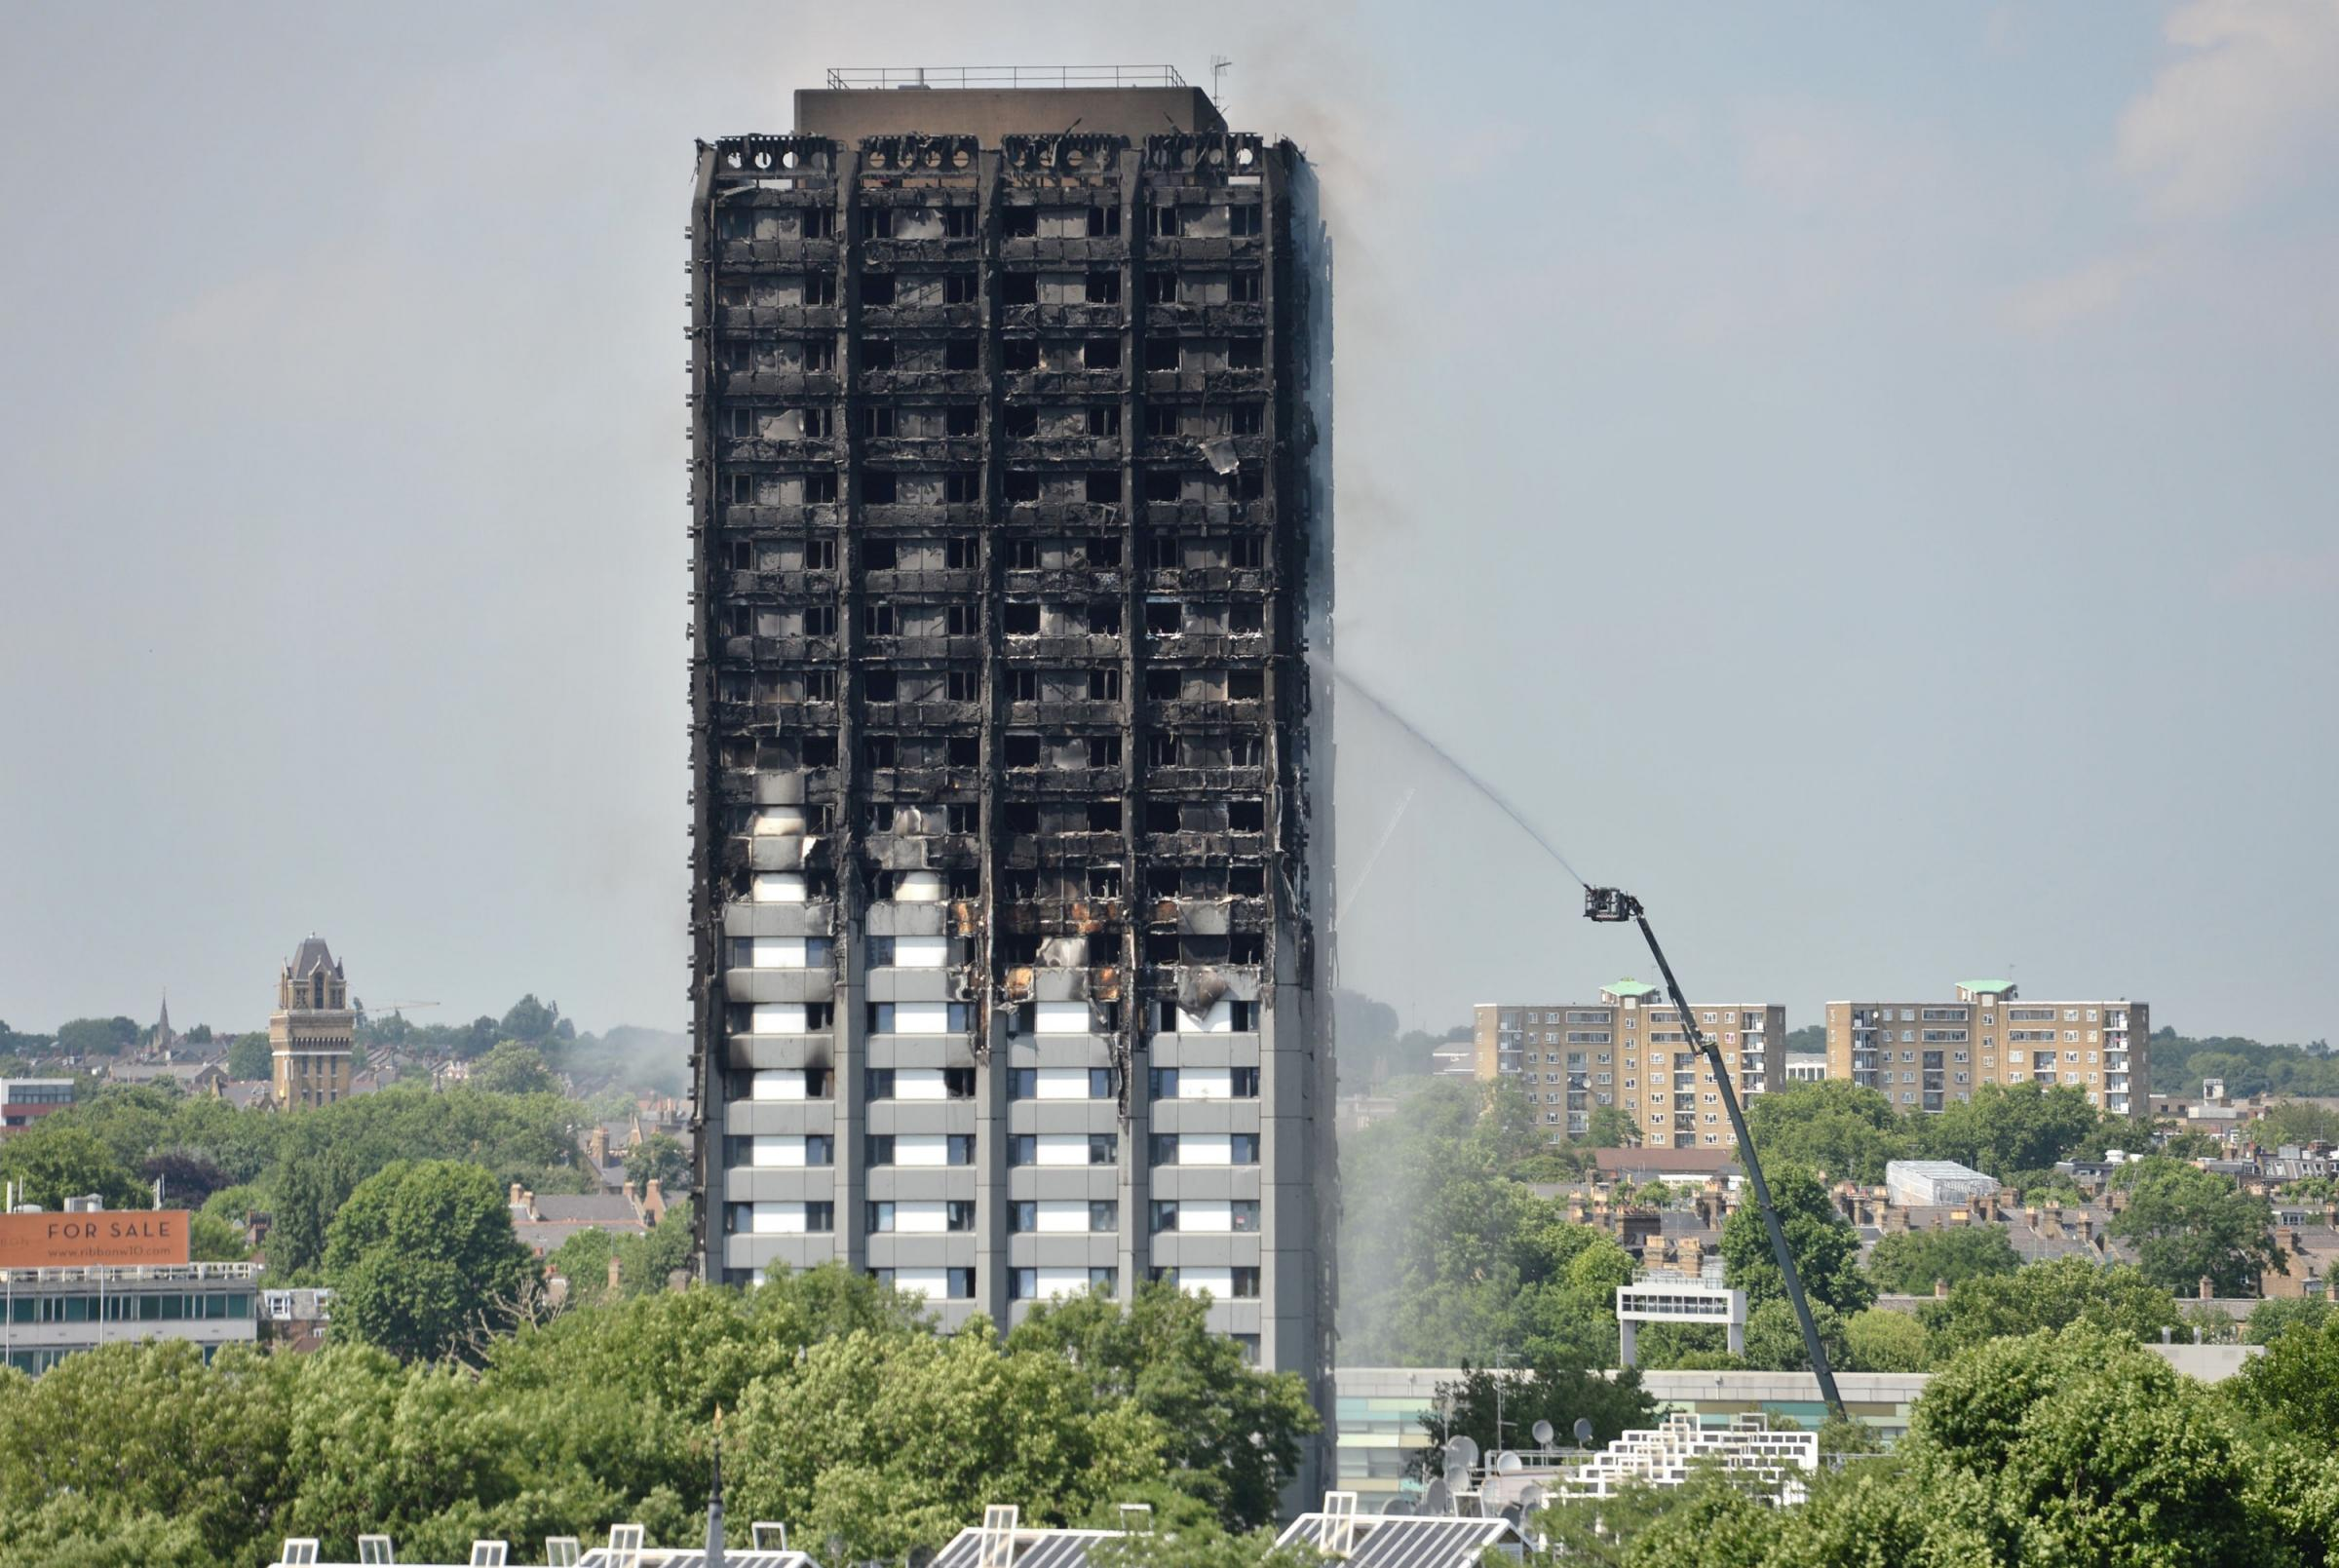 Warrington firm gave 'inadequate' fire safety advice over Grenfell Tower refurb